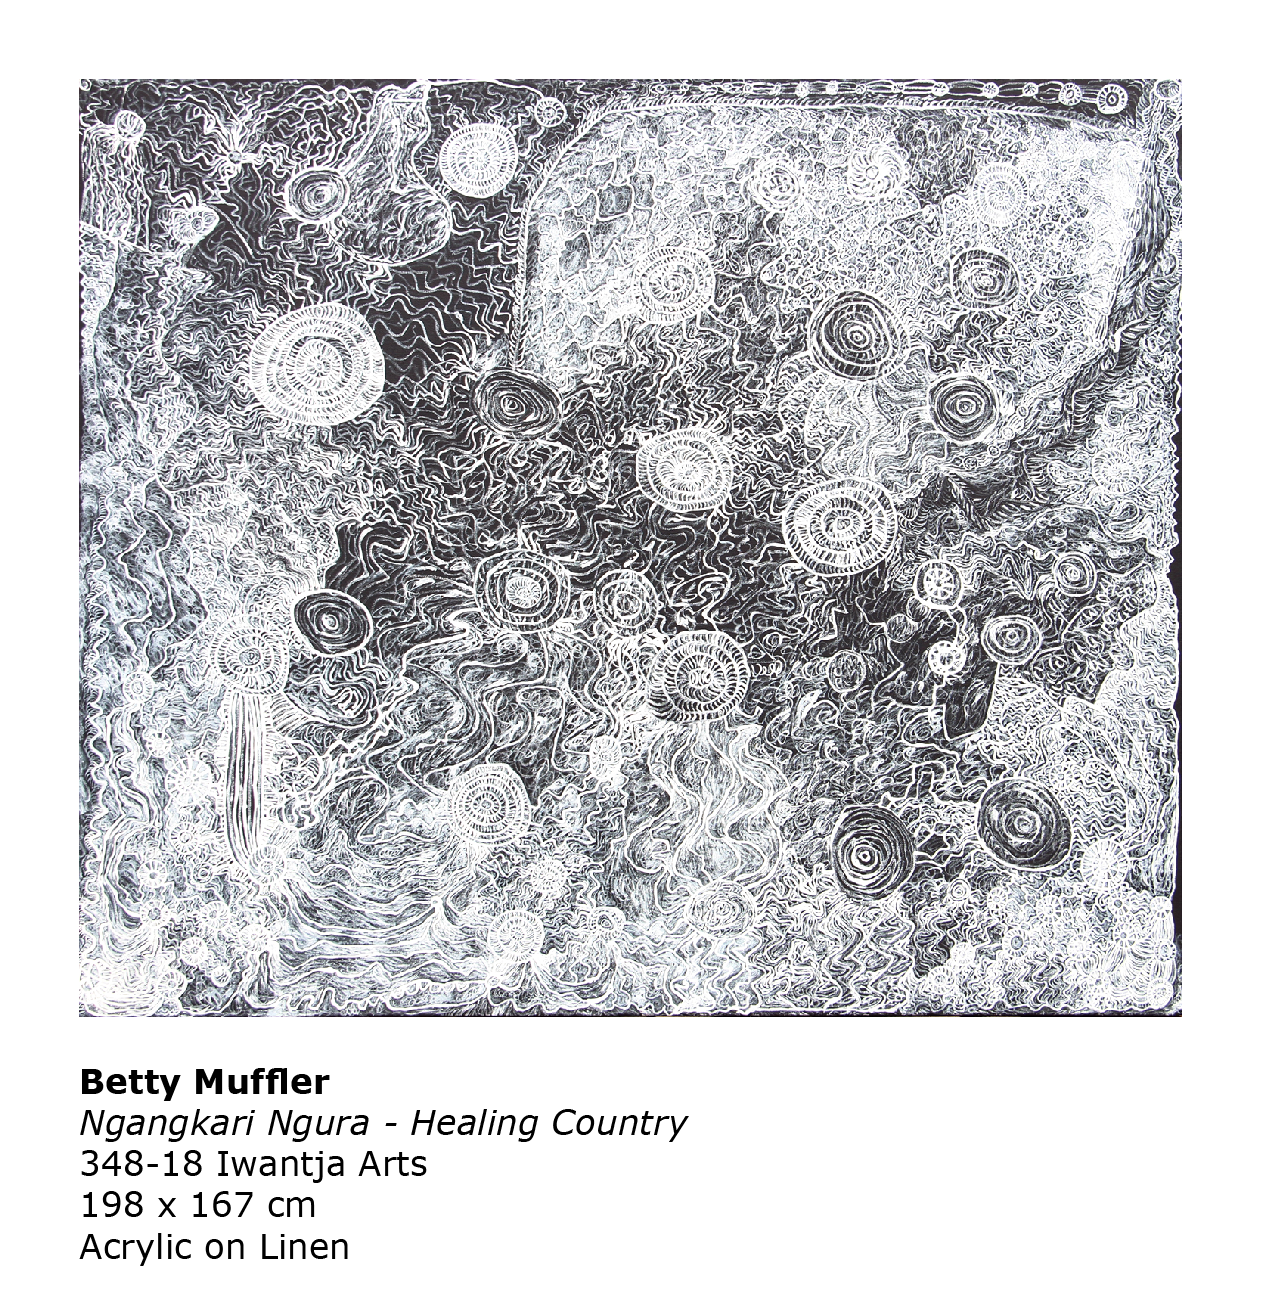 betty_muffler_348-18IA.png